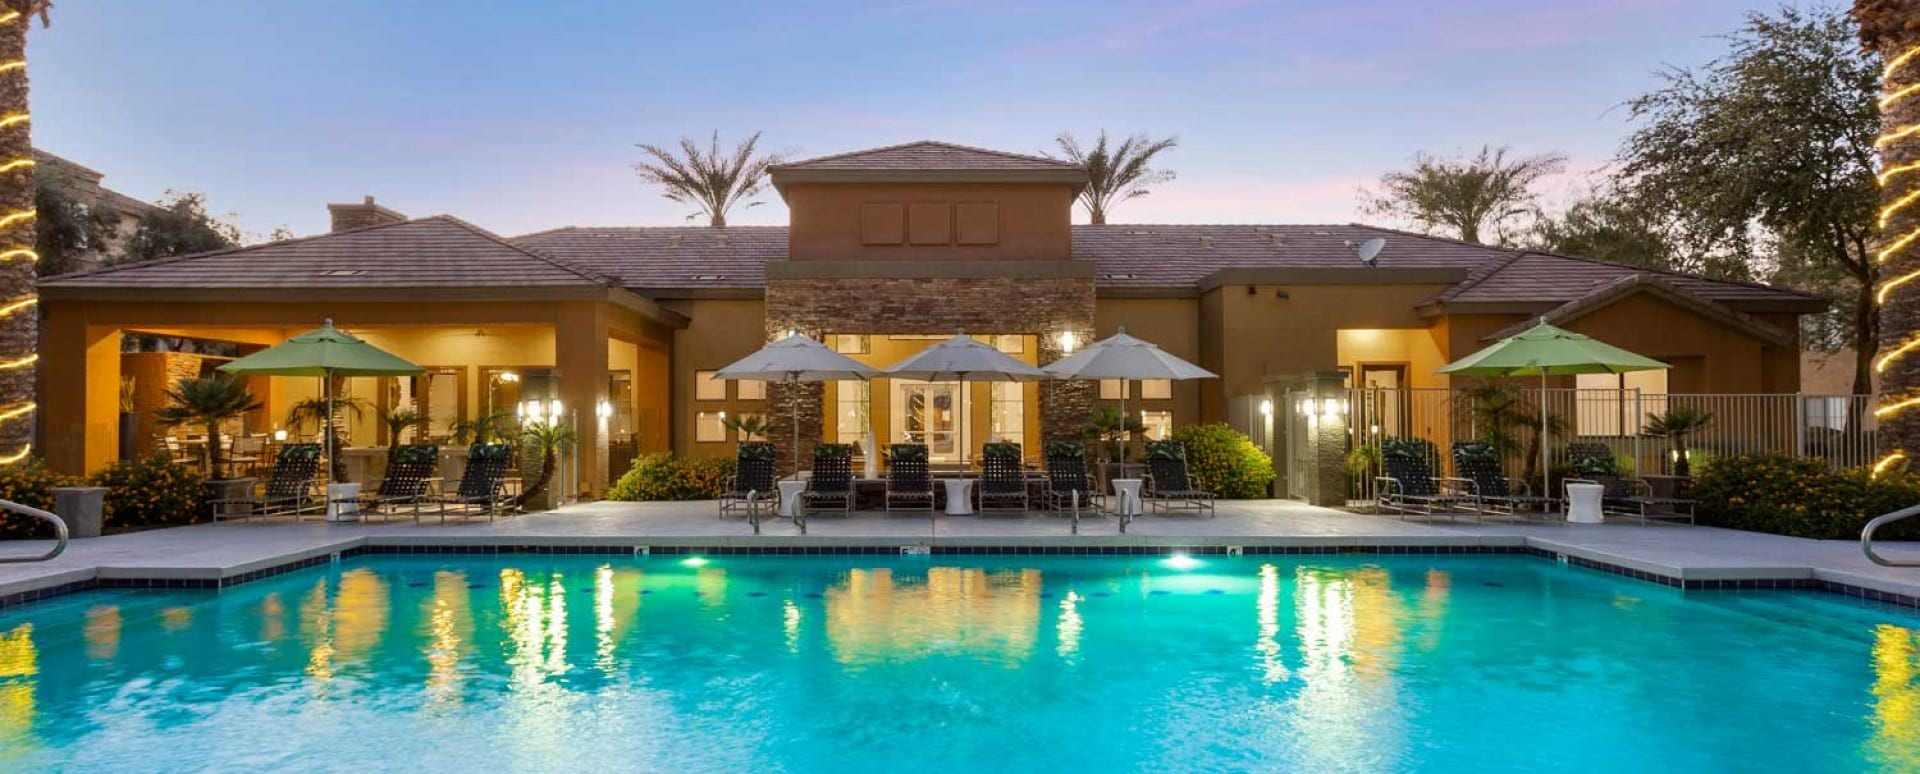 Two Resort-Style Pools with Heated Spa at Cortland South Mountain